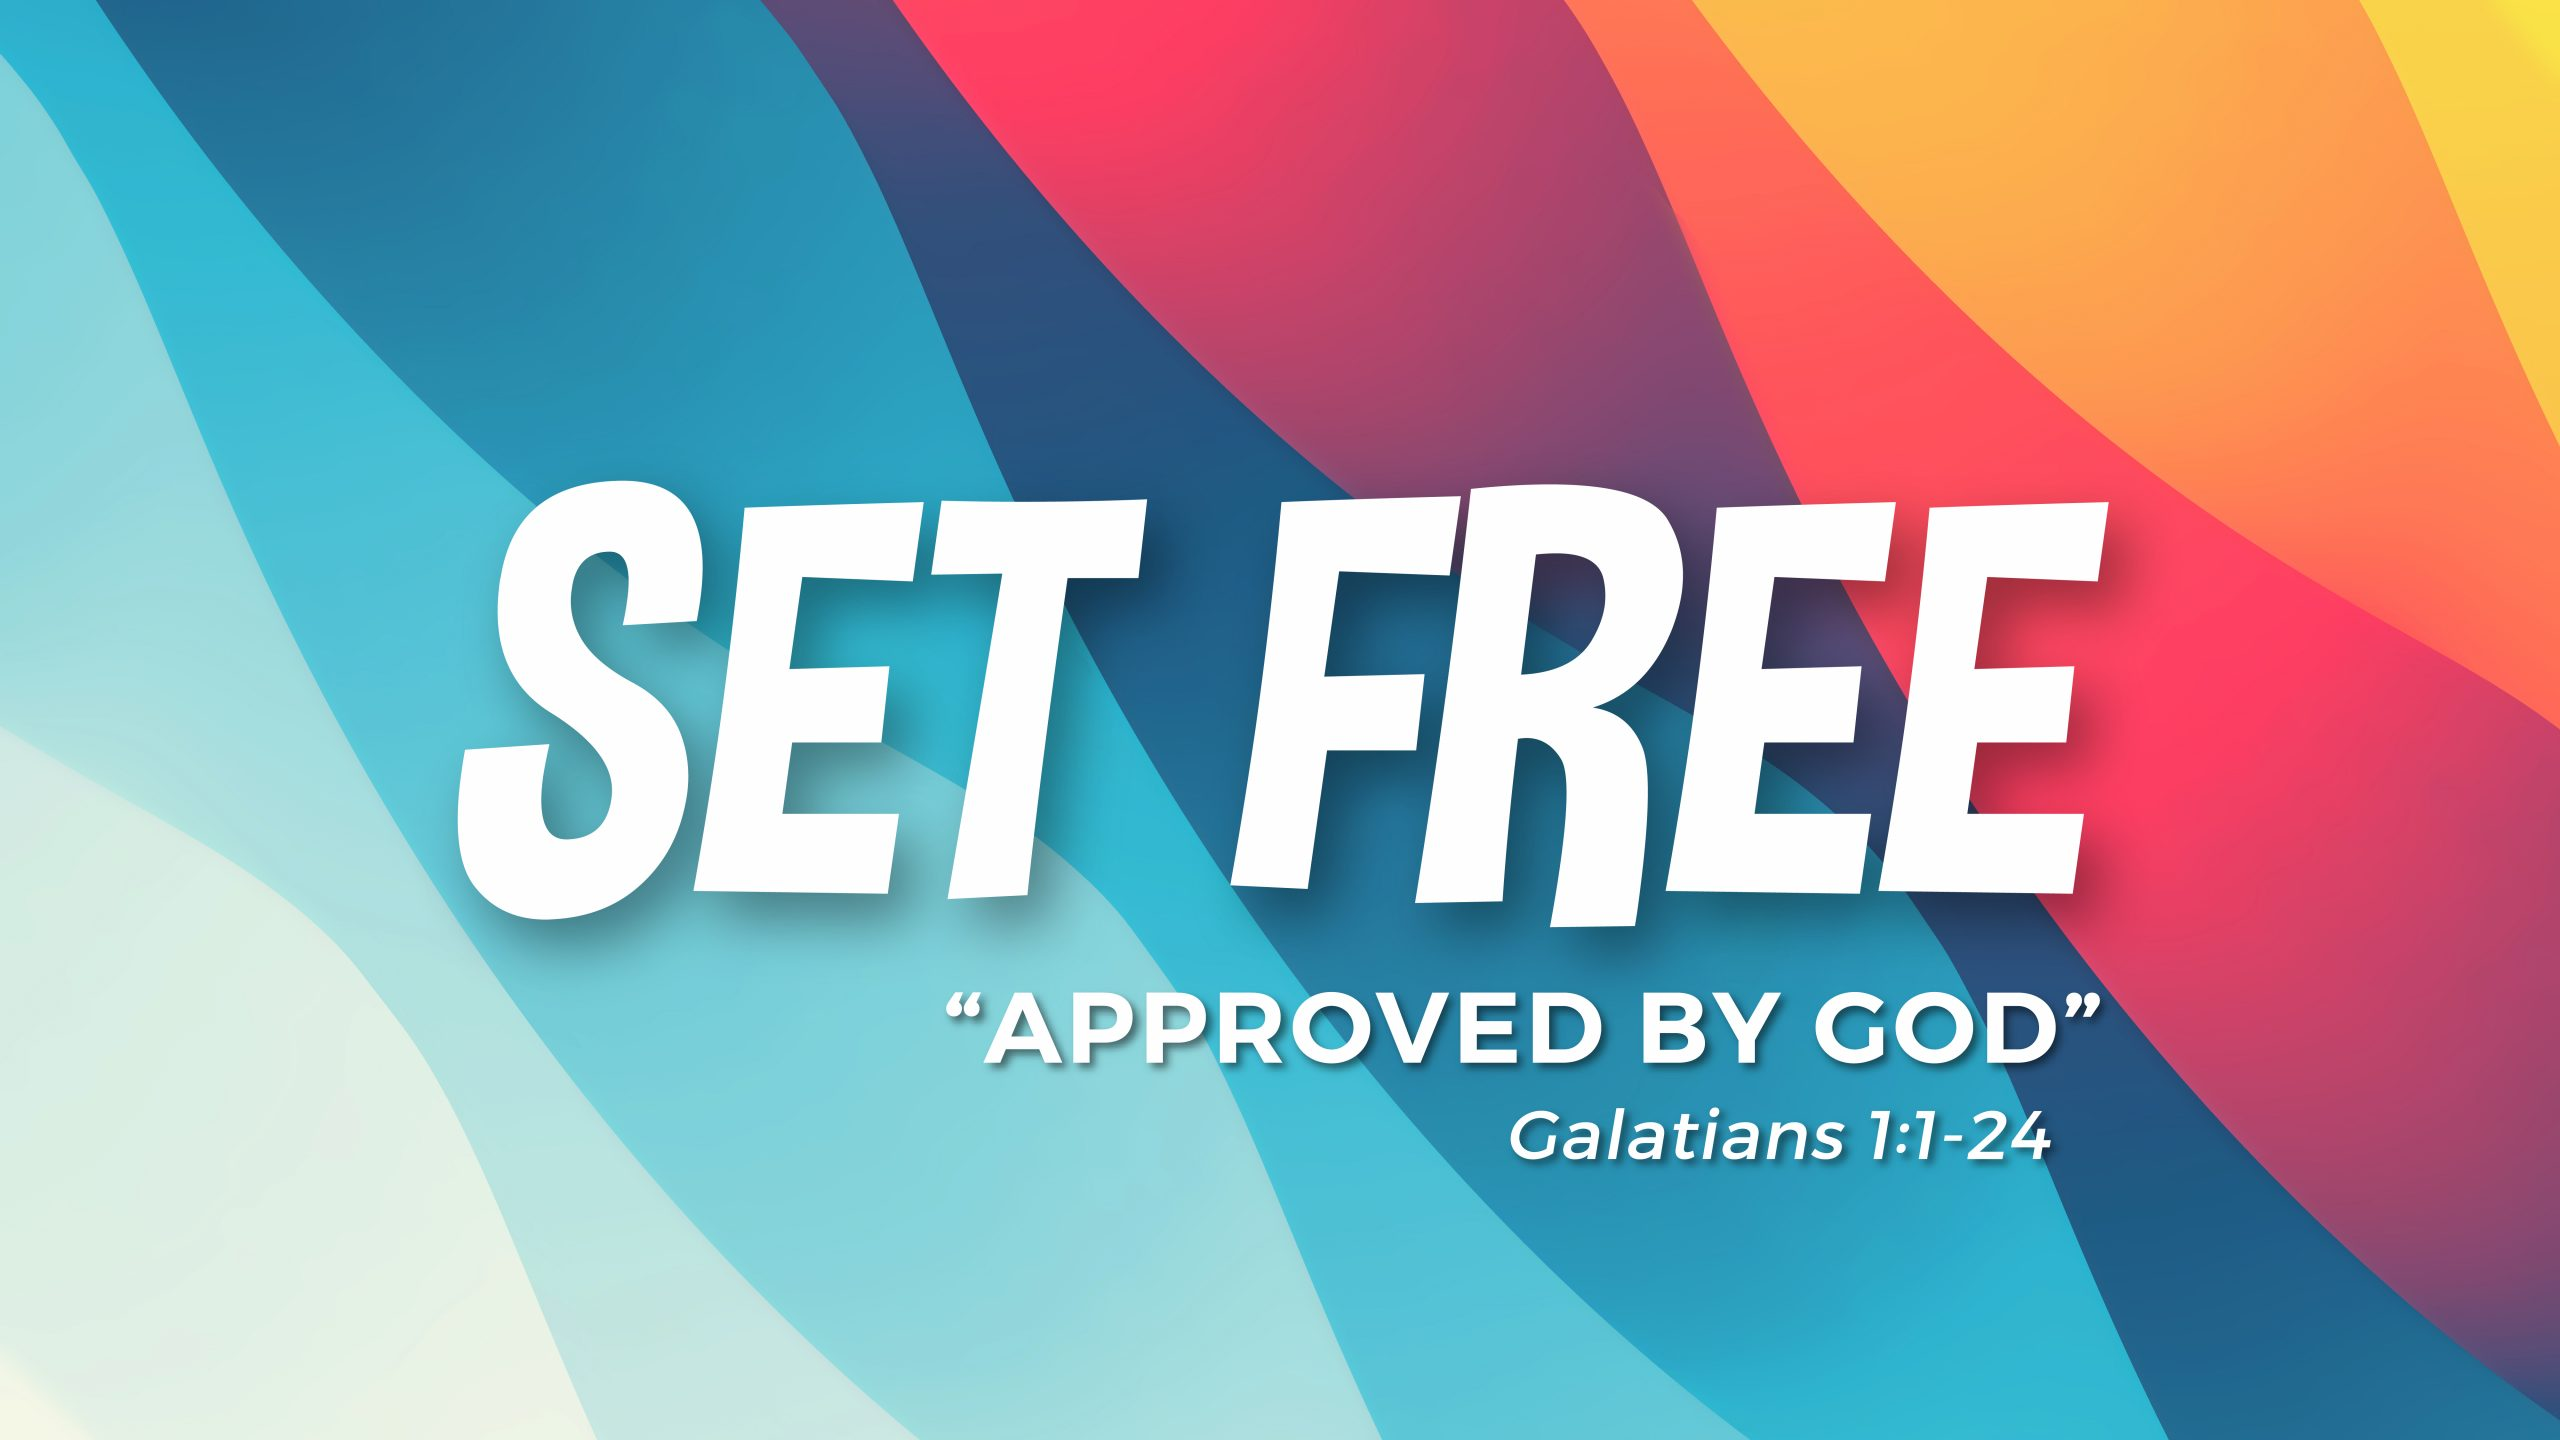 Set Free: Approved by God